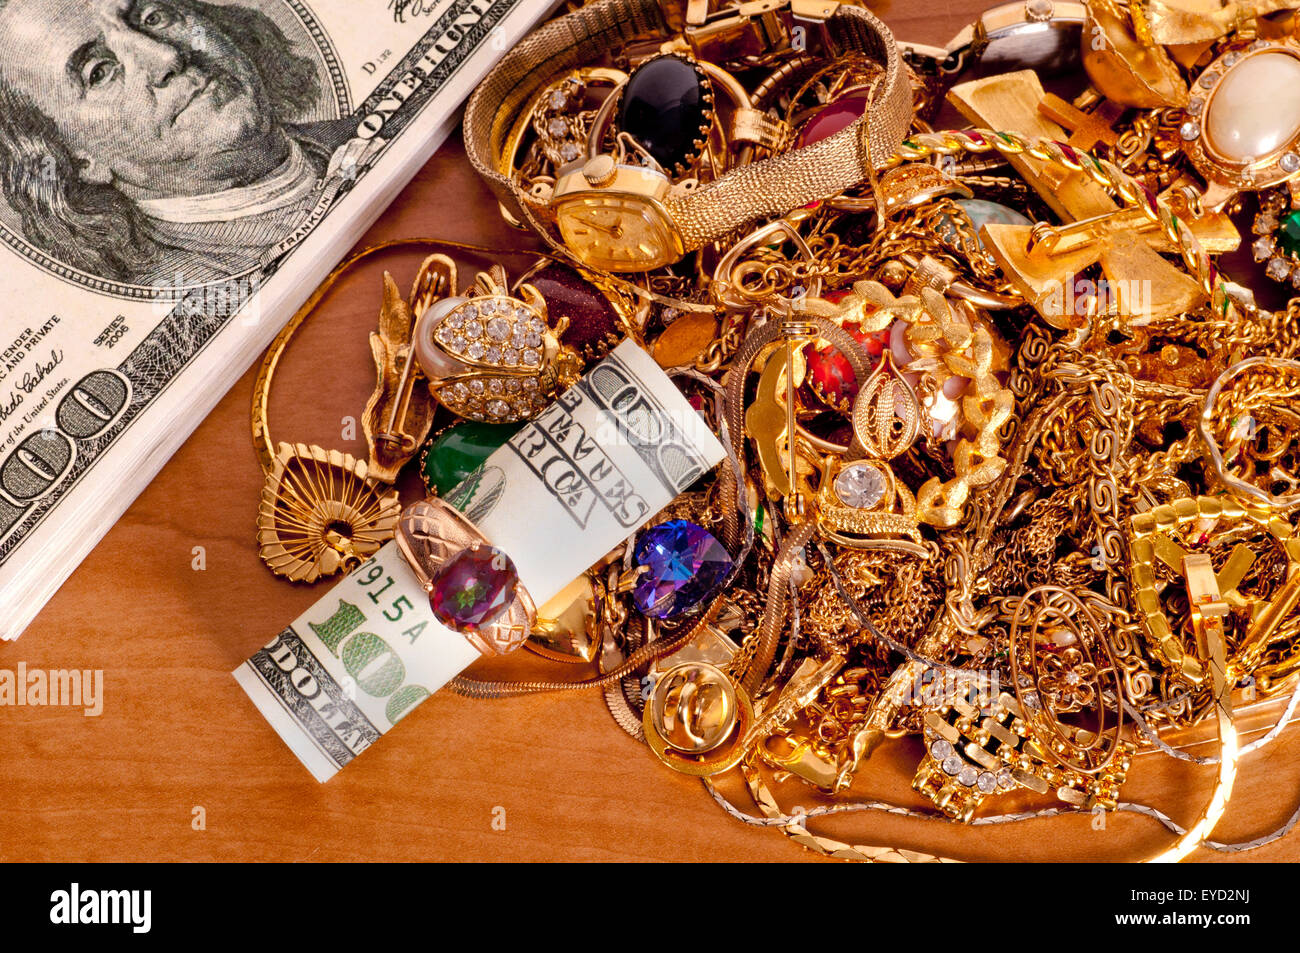 Faire de l'argent vendre l'or scrap bijoux concept. Photo Stock